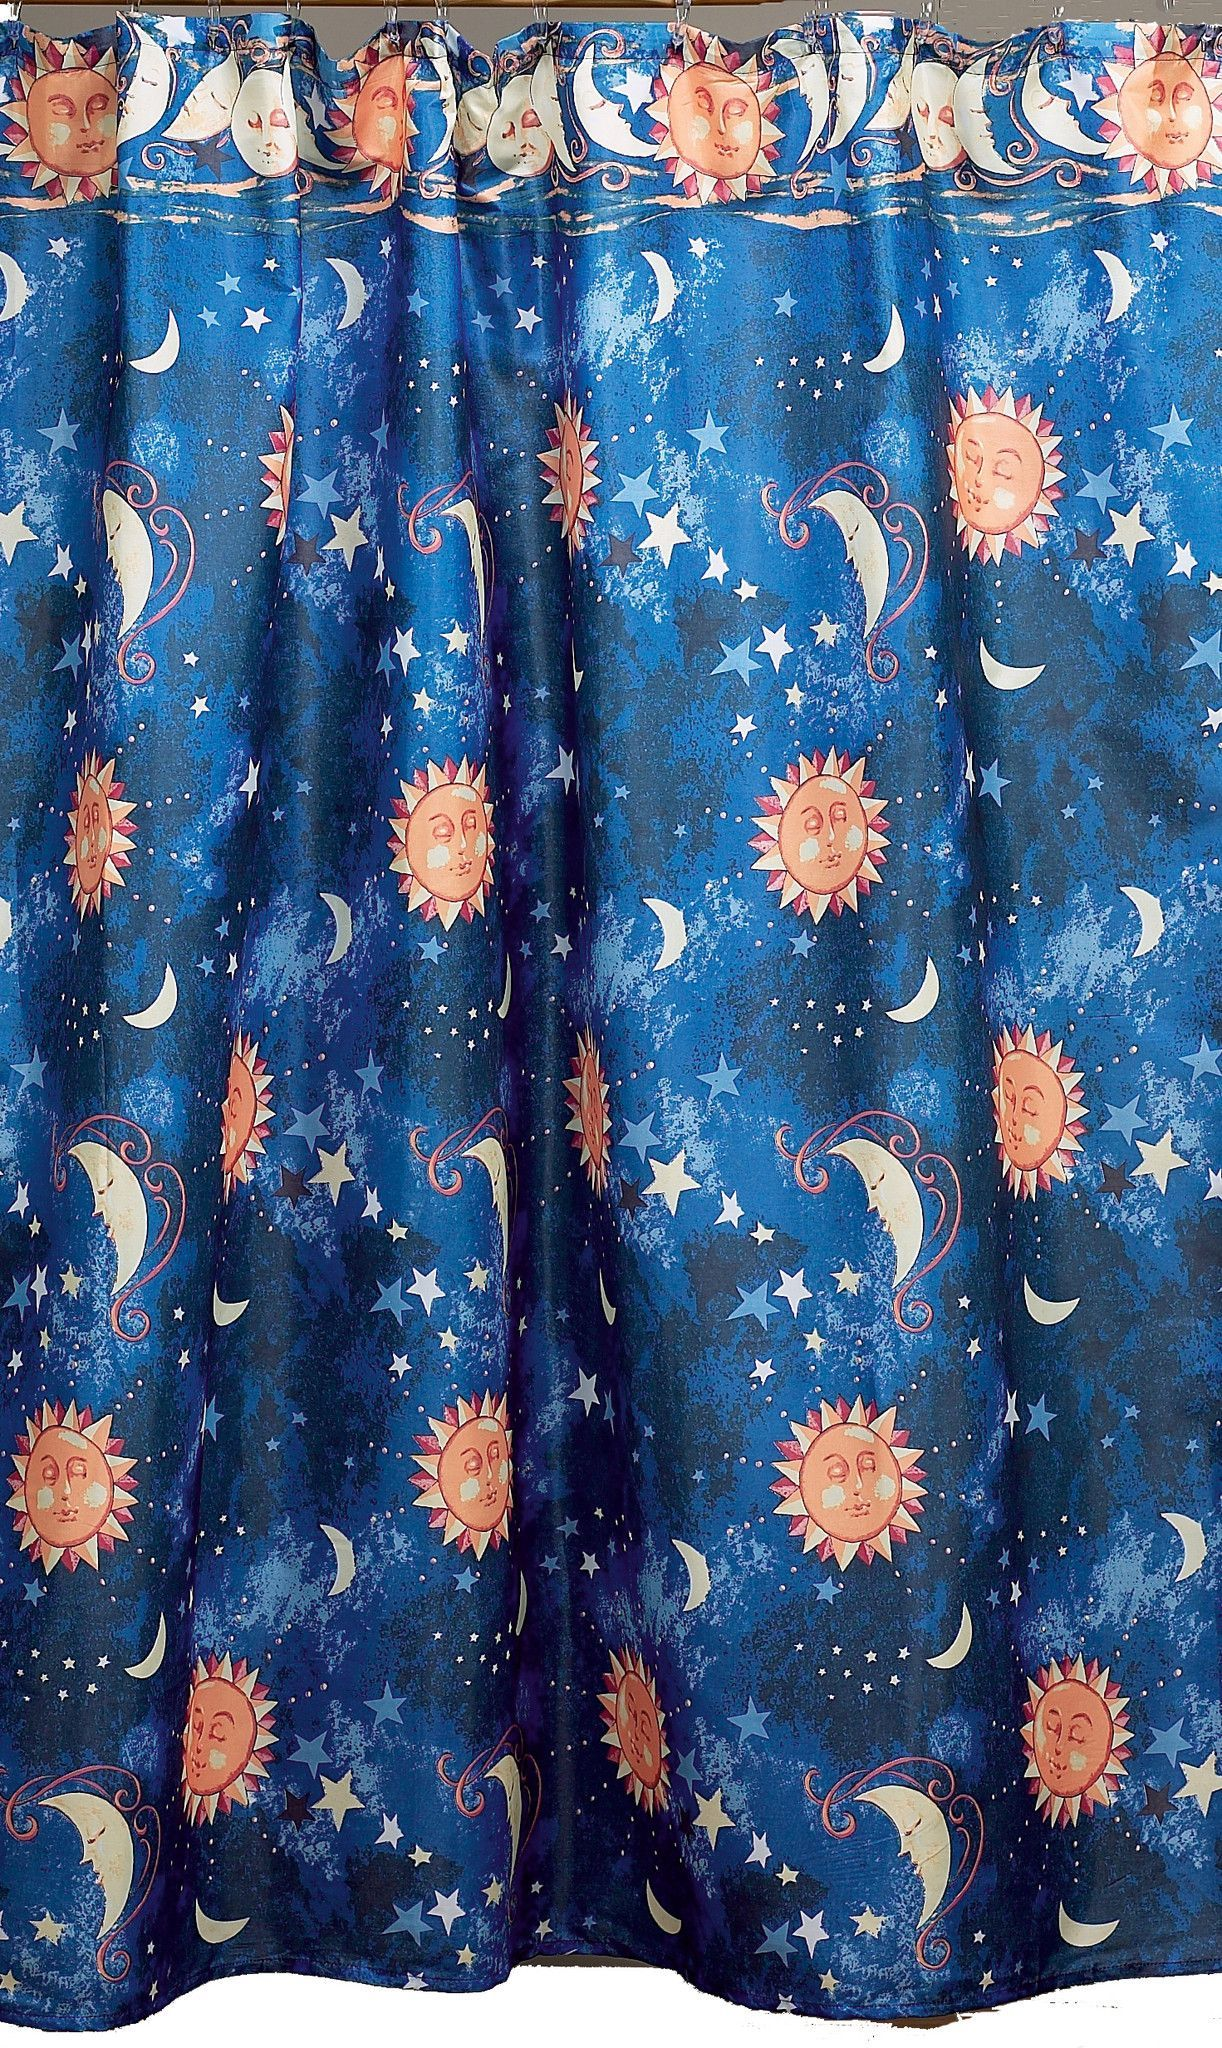 Sun Moon And Stars Astrology Fabric Shower Curtain Fabric Shower Curtains Shower Curtain Sizes